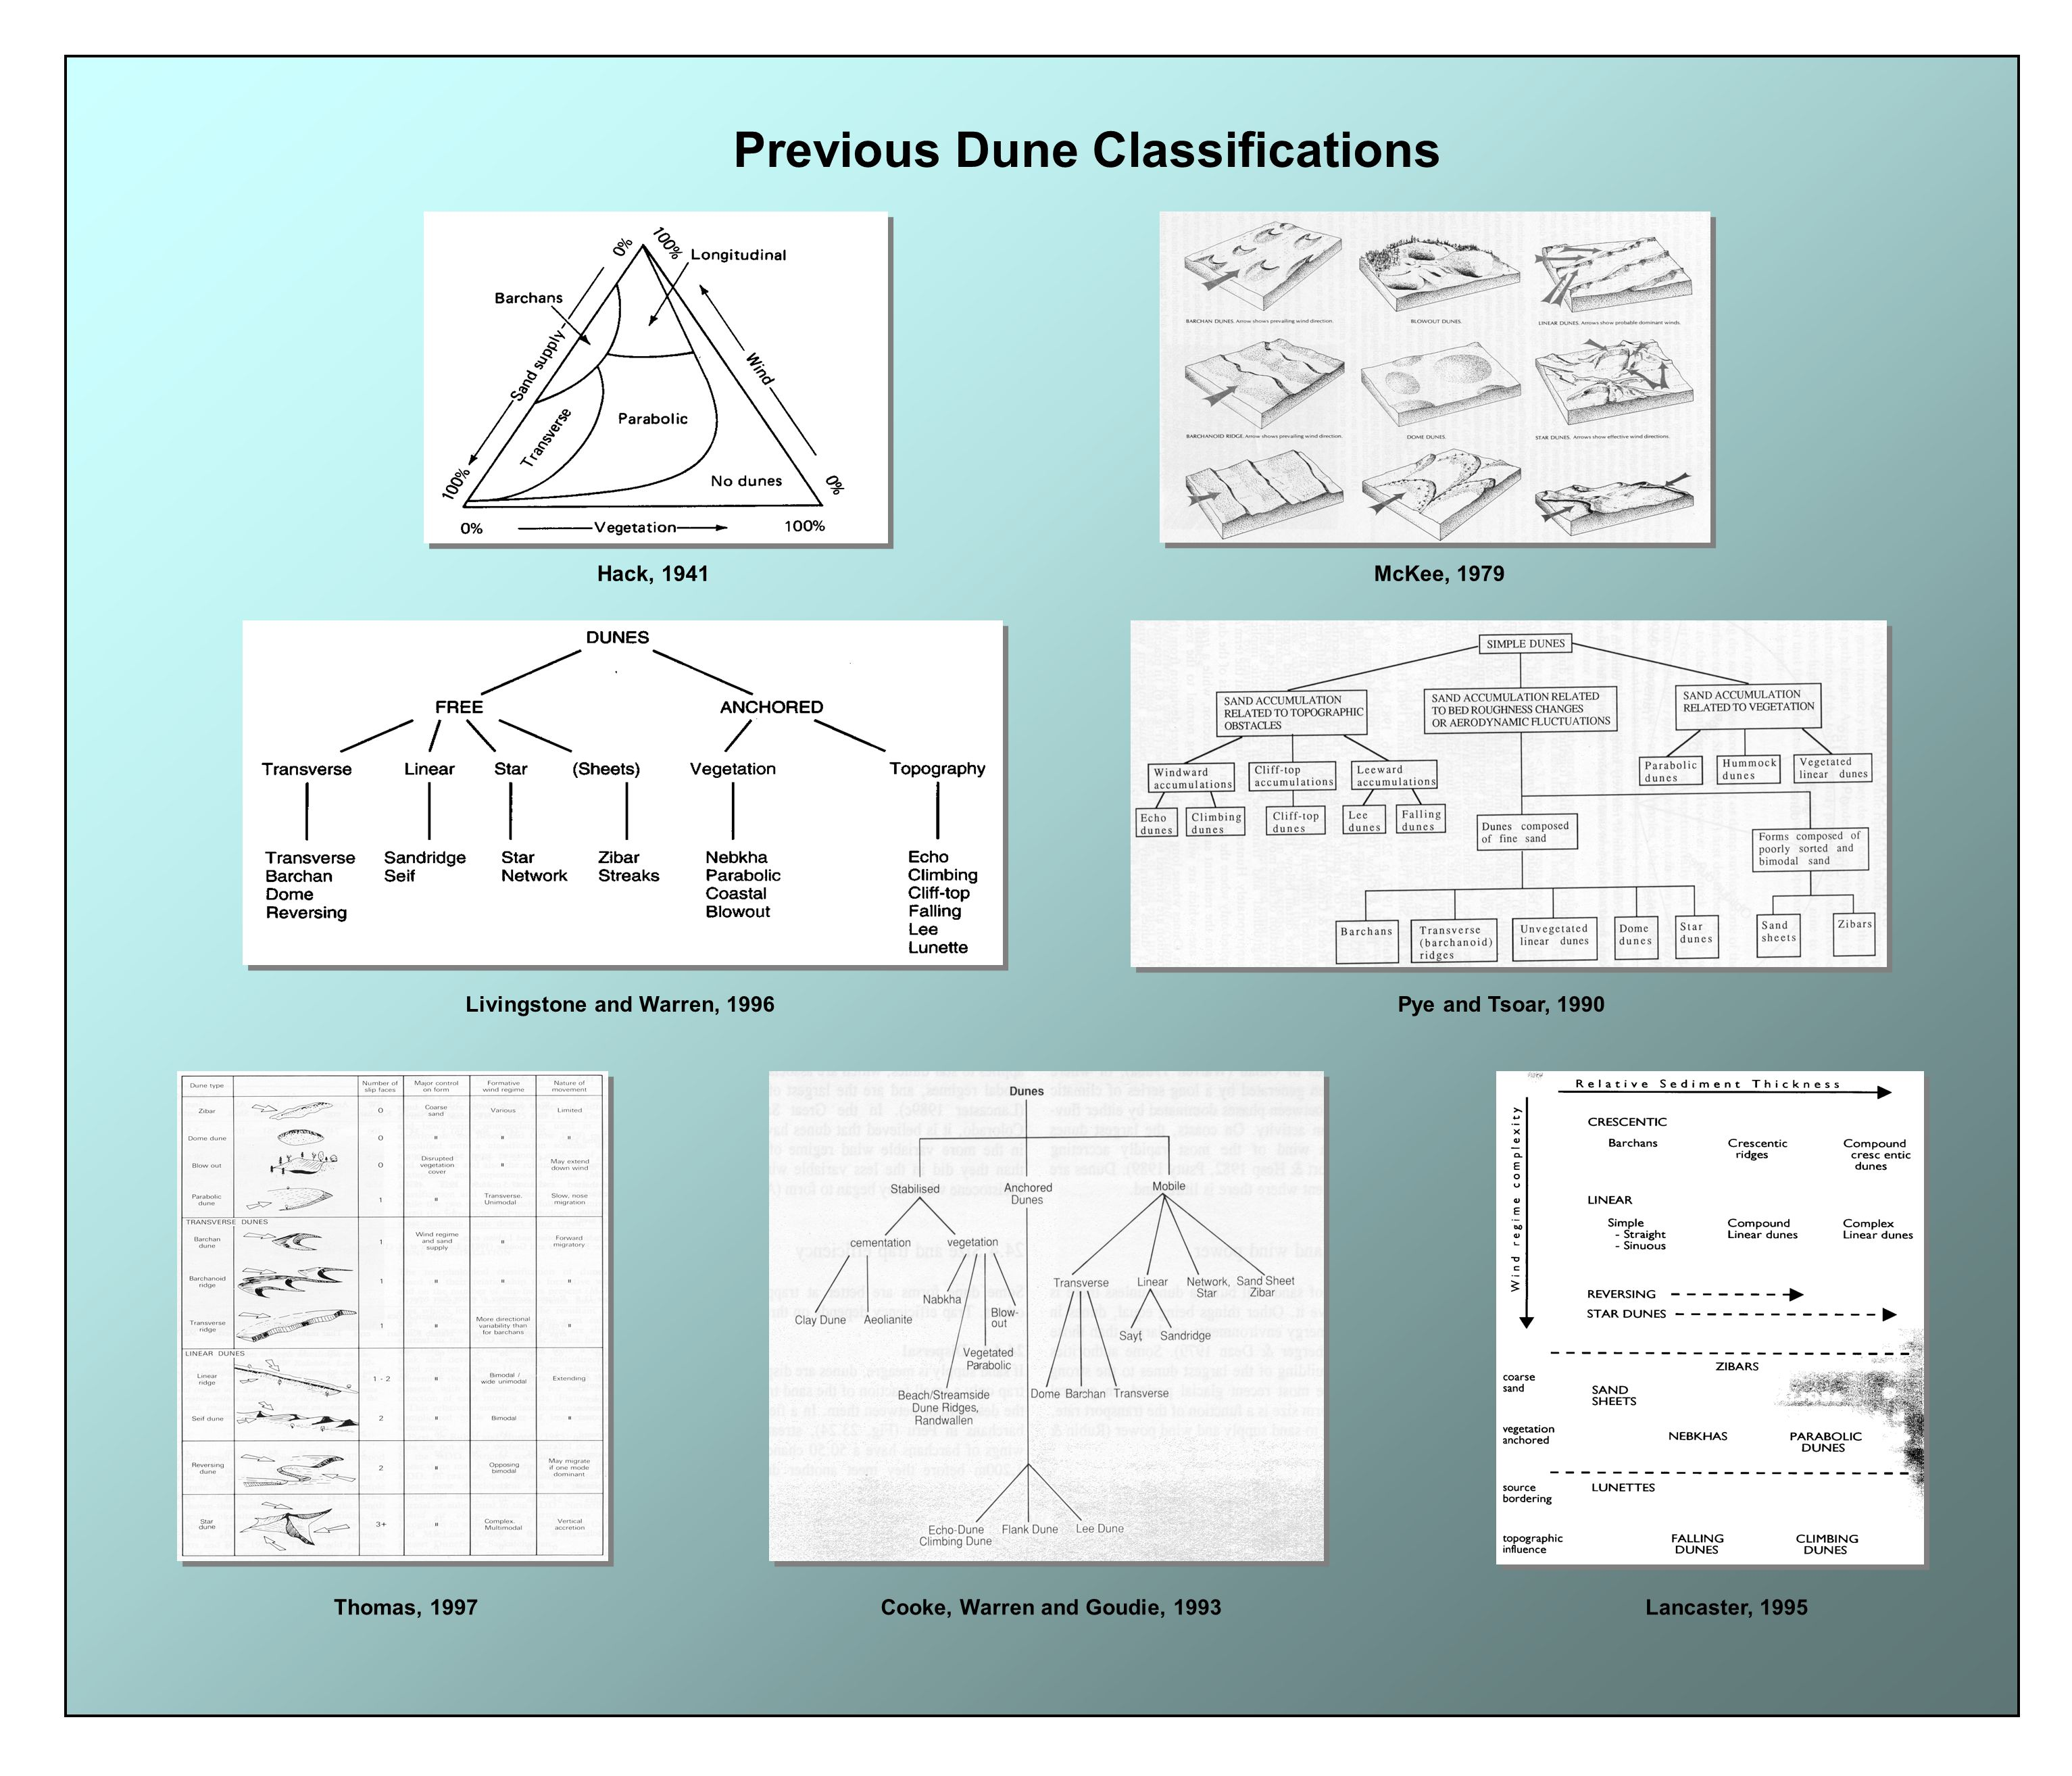 Previous Dune Classifications